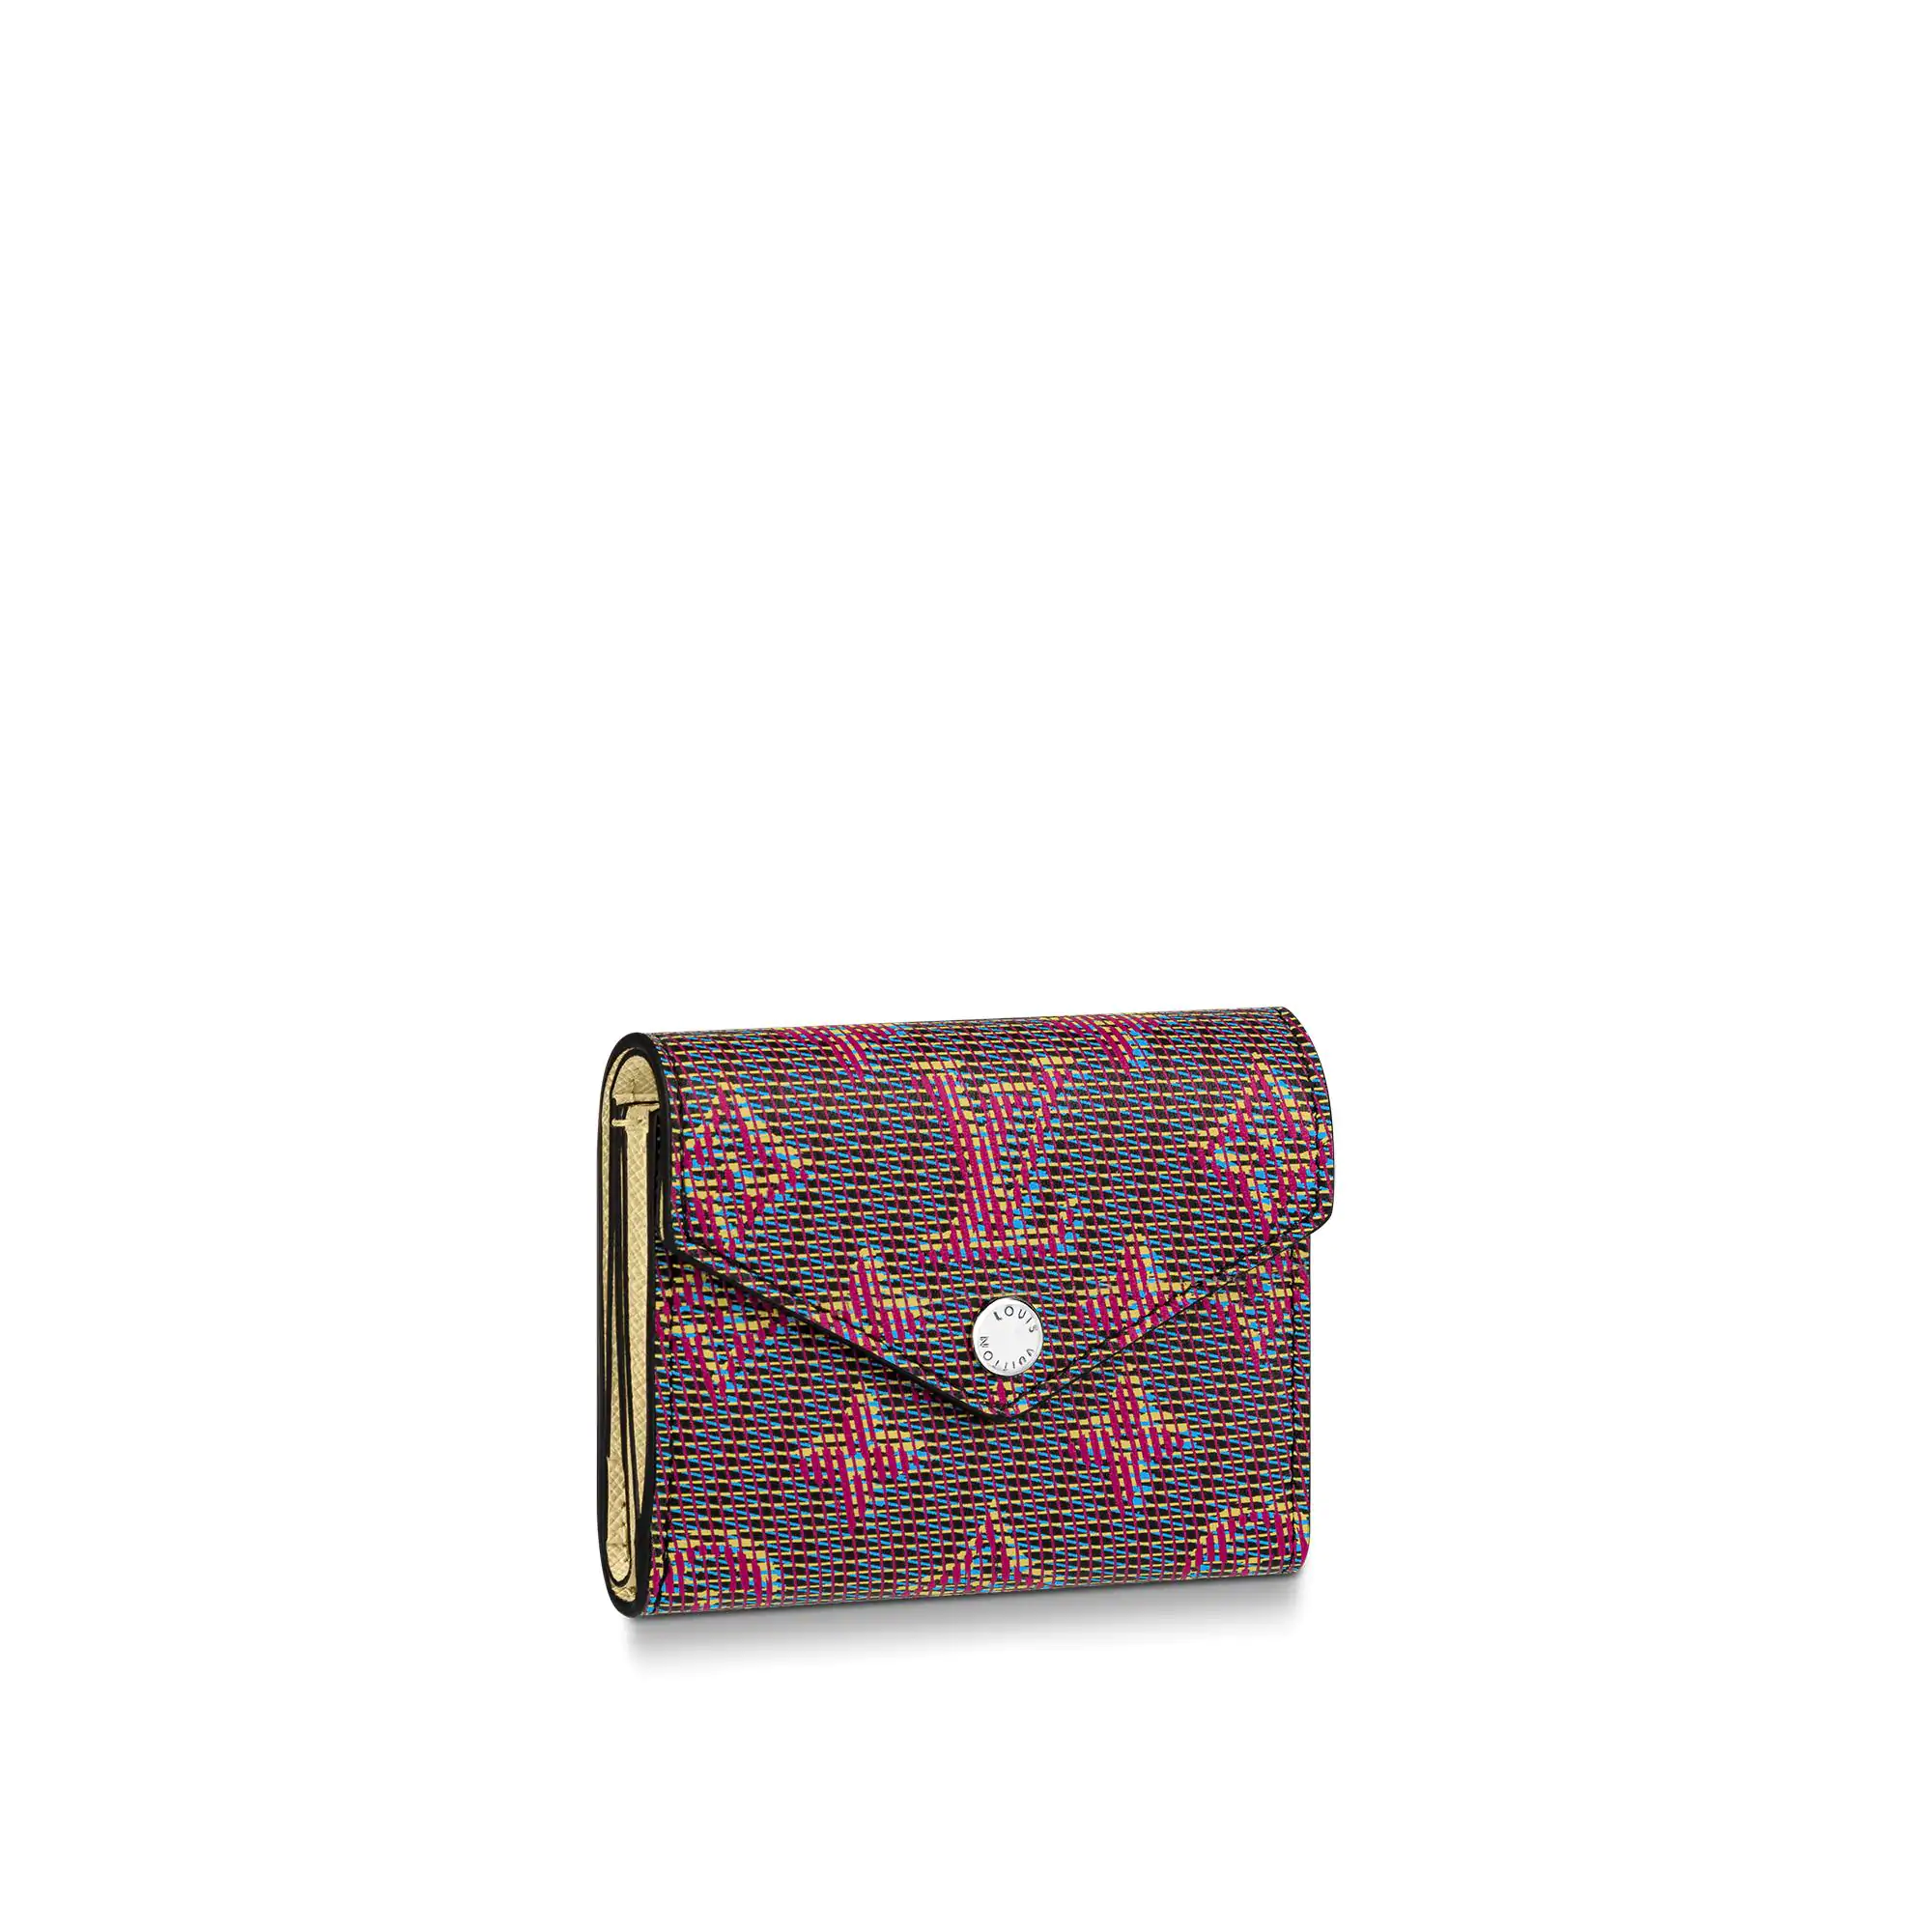 Louis Vuitton Monogram LV Pop Zoe Flap Wallet M68673 Red